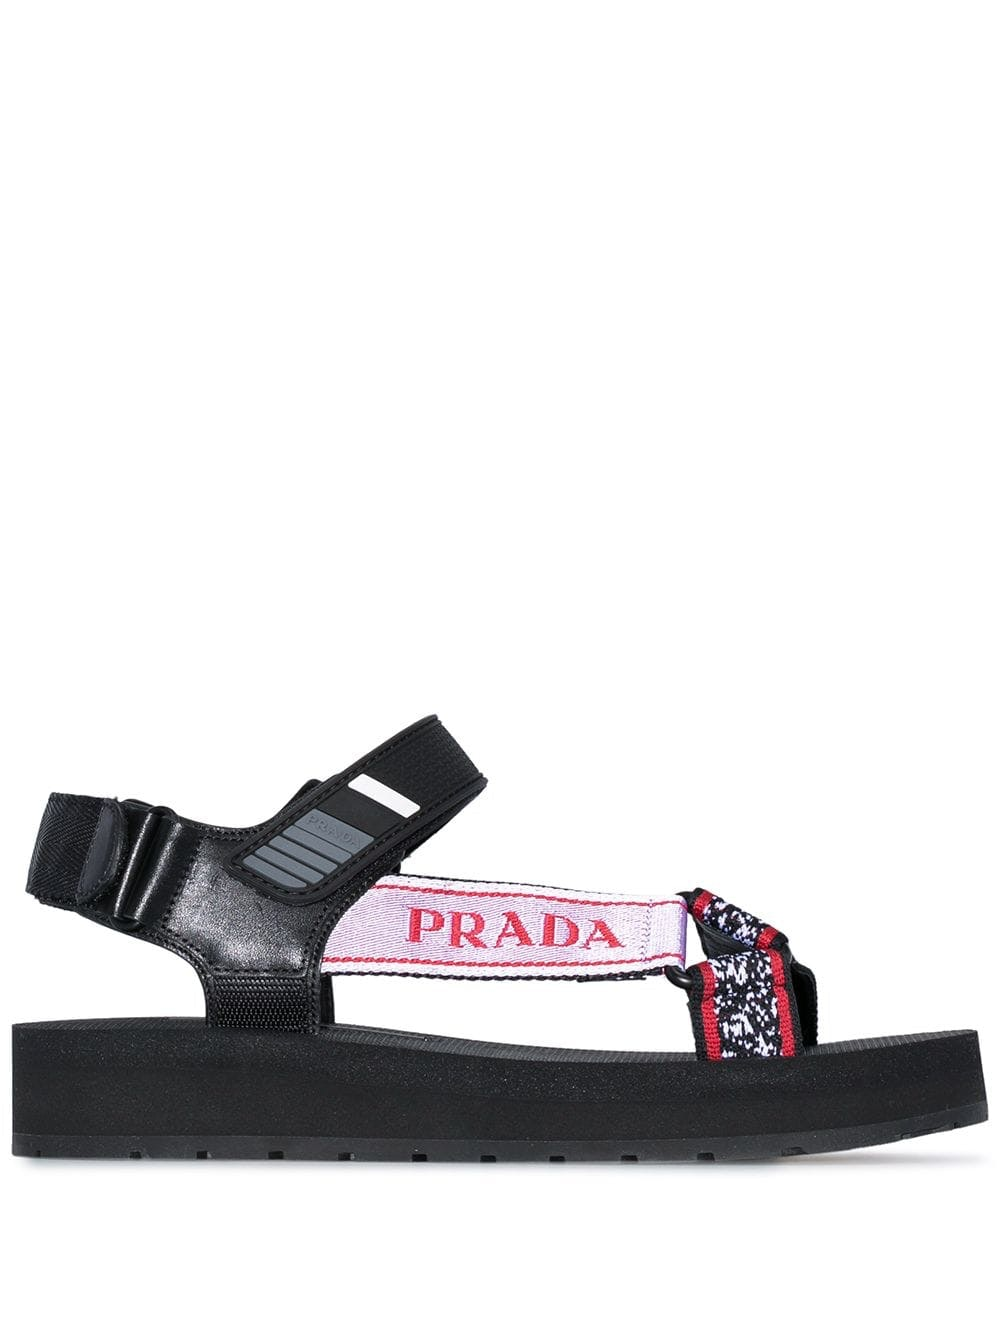 Spring's Sport Sandals Trend Isn't Just